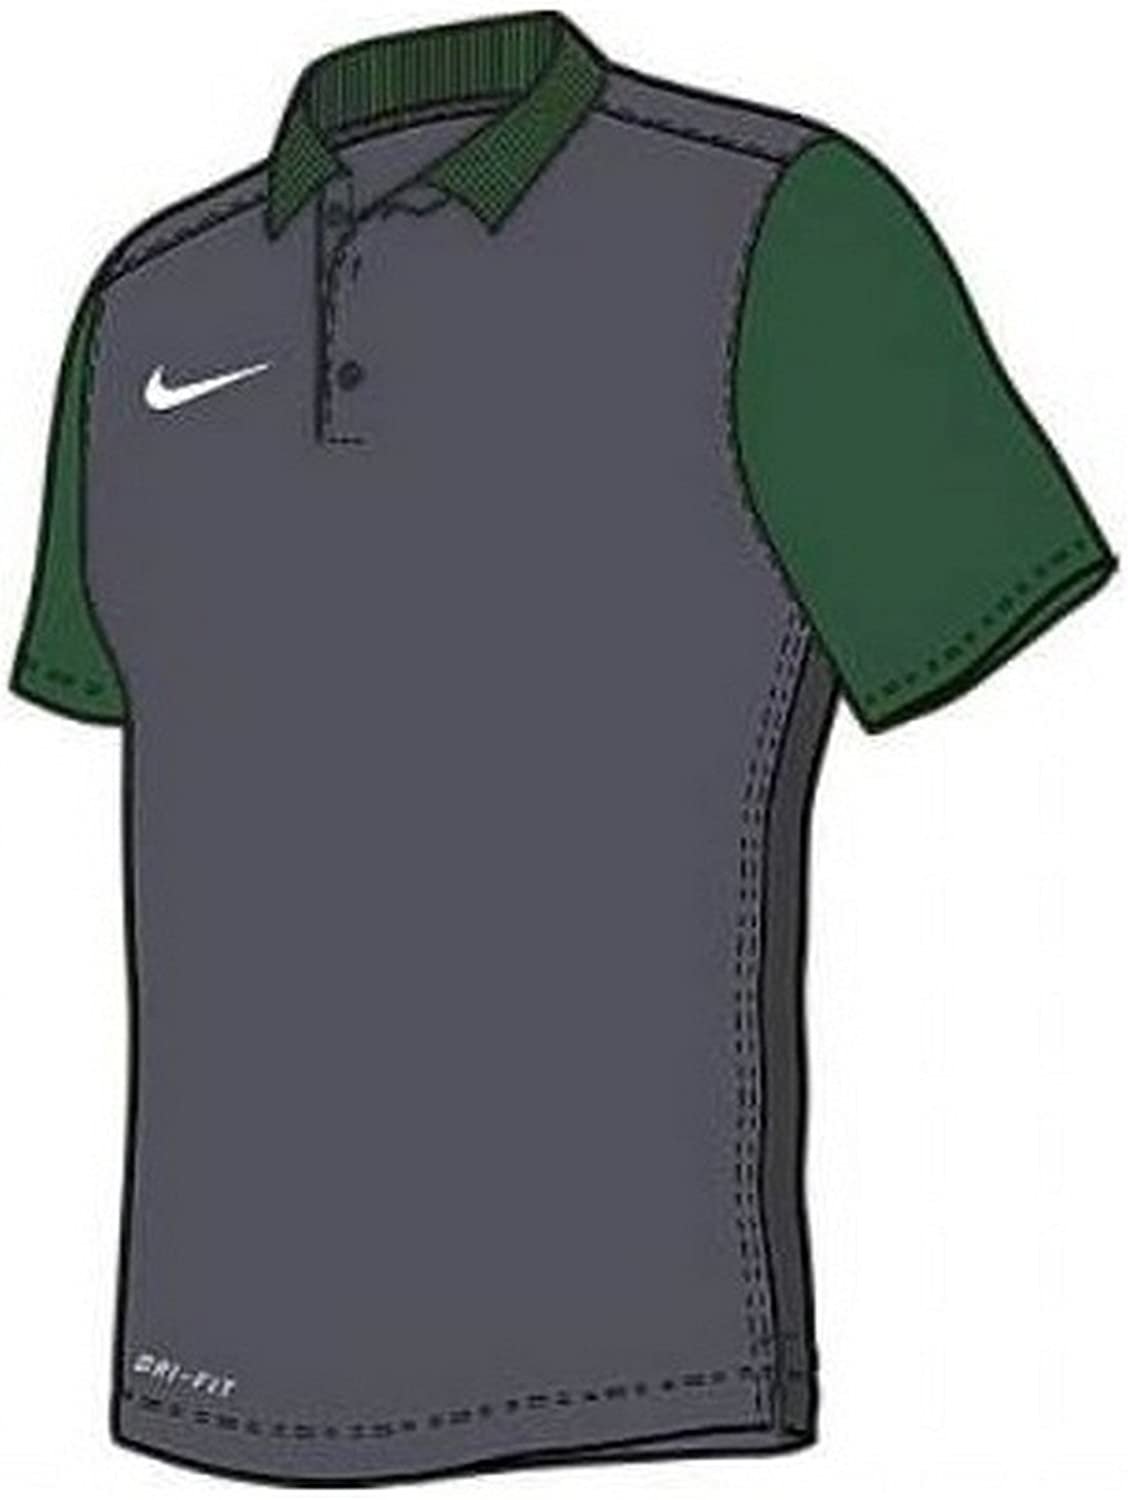 Nike Men's Pre-Season Polo Shirt 747988 361 Green Dark Grey Size XL